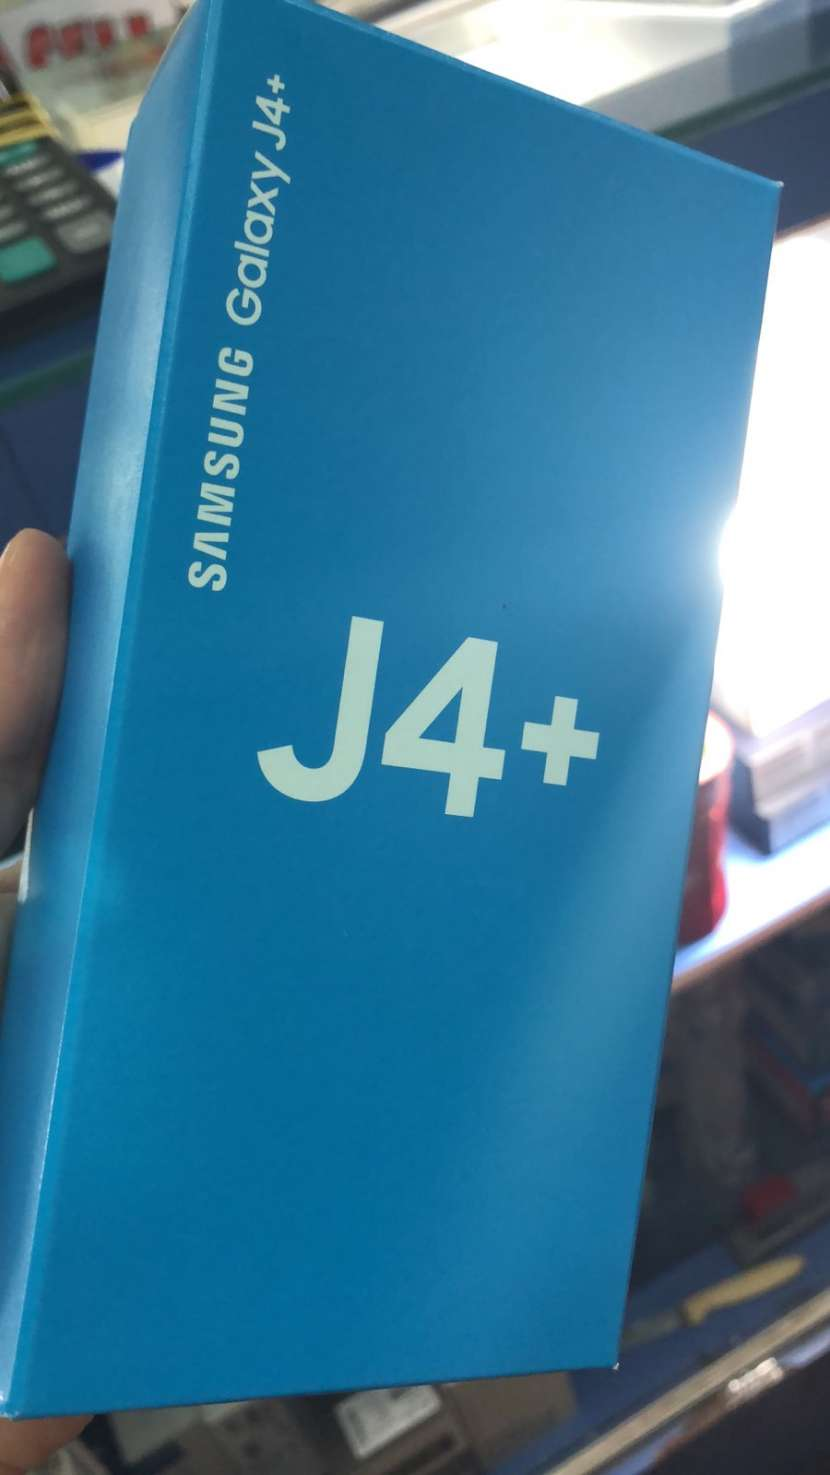 Samsung Galaxy J4 Plus más auricular Bluetooth de regalo